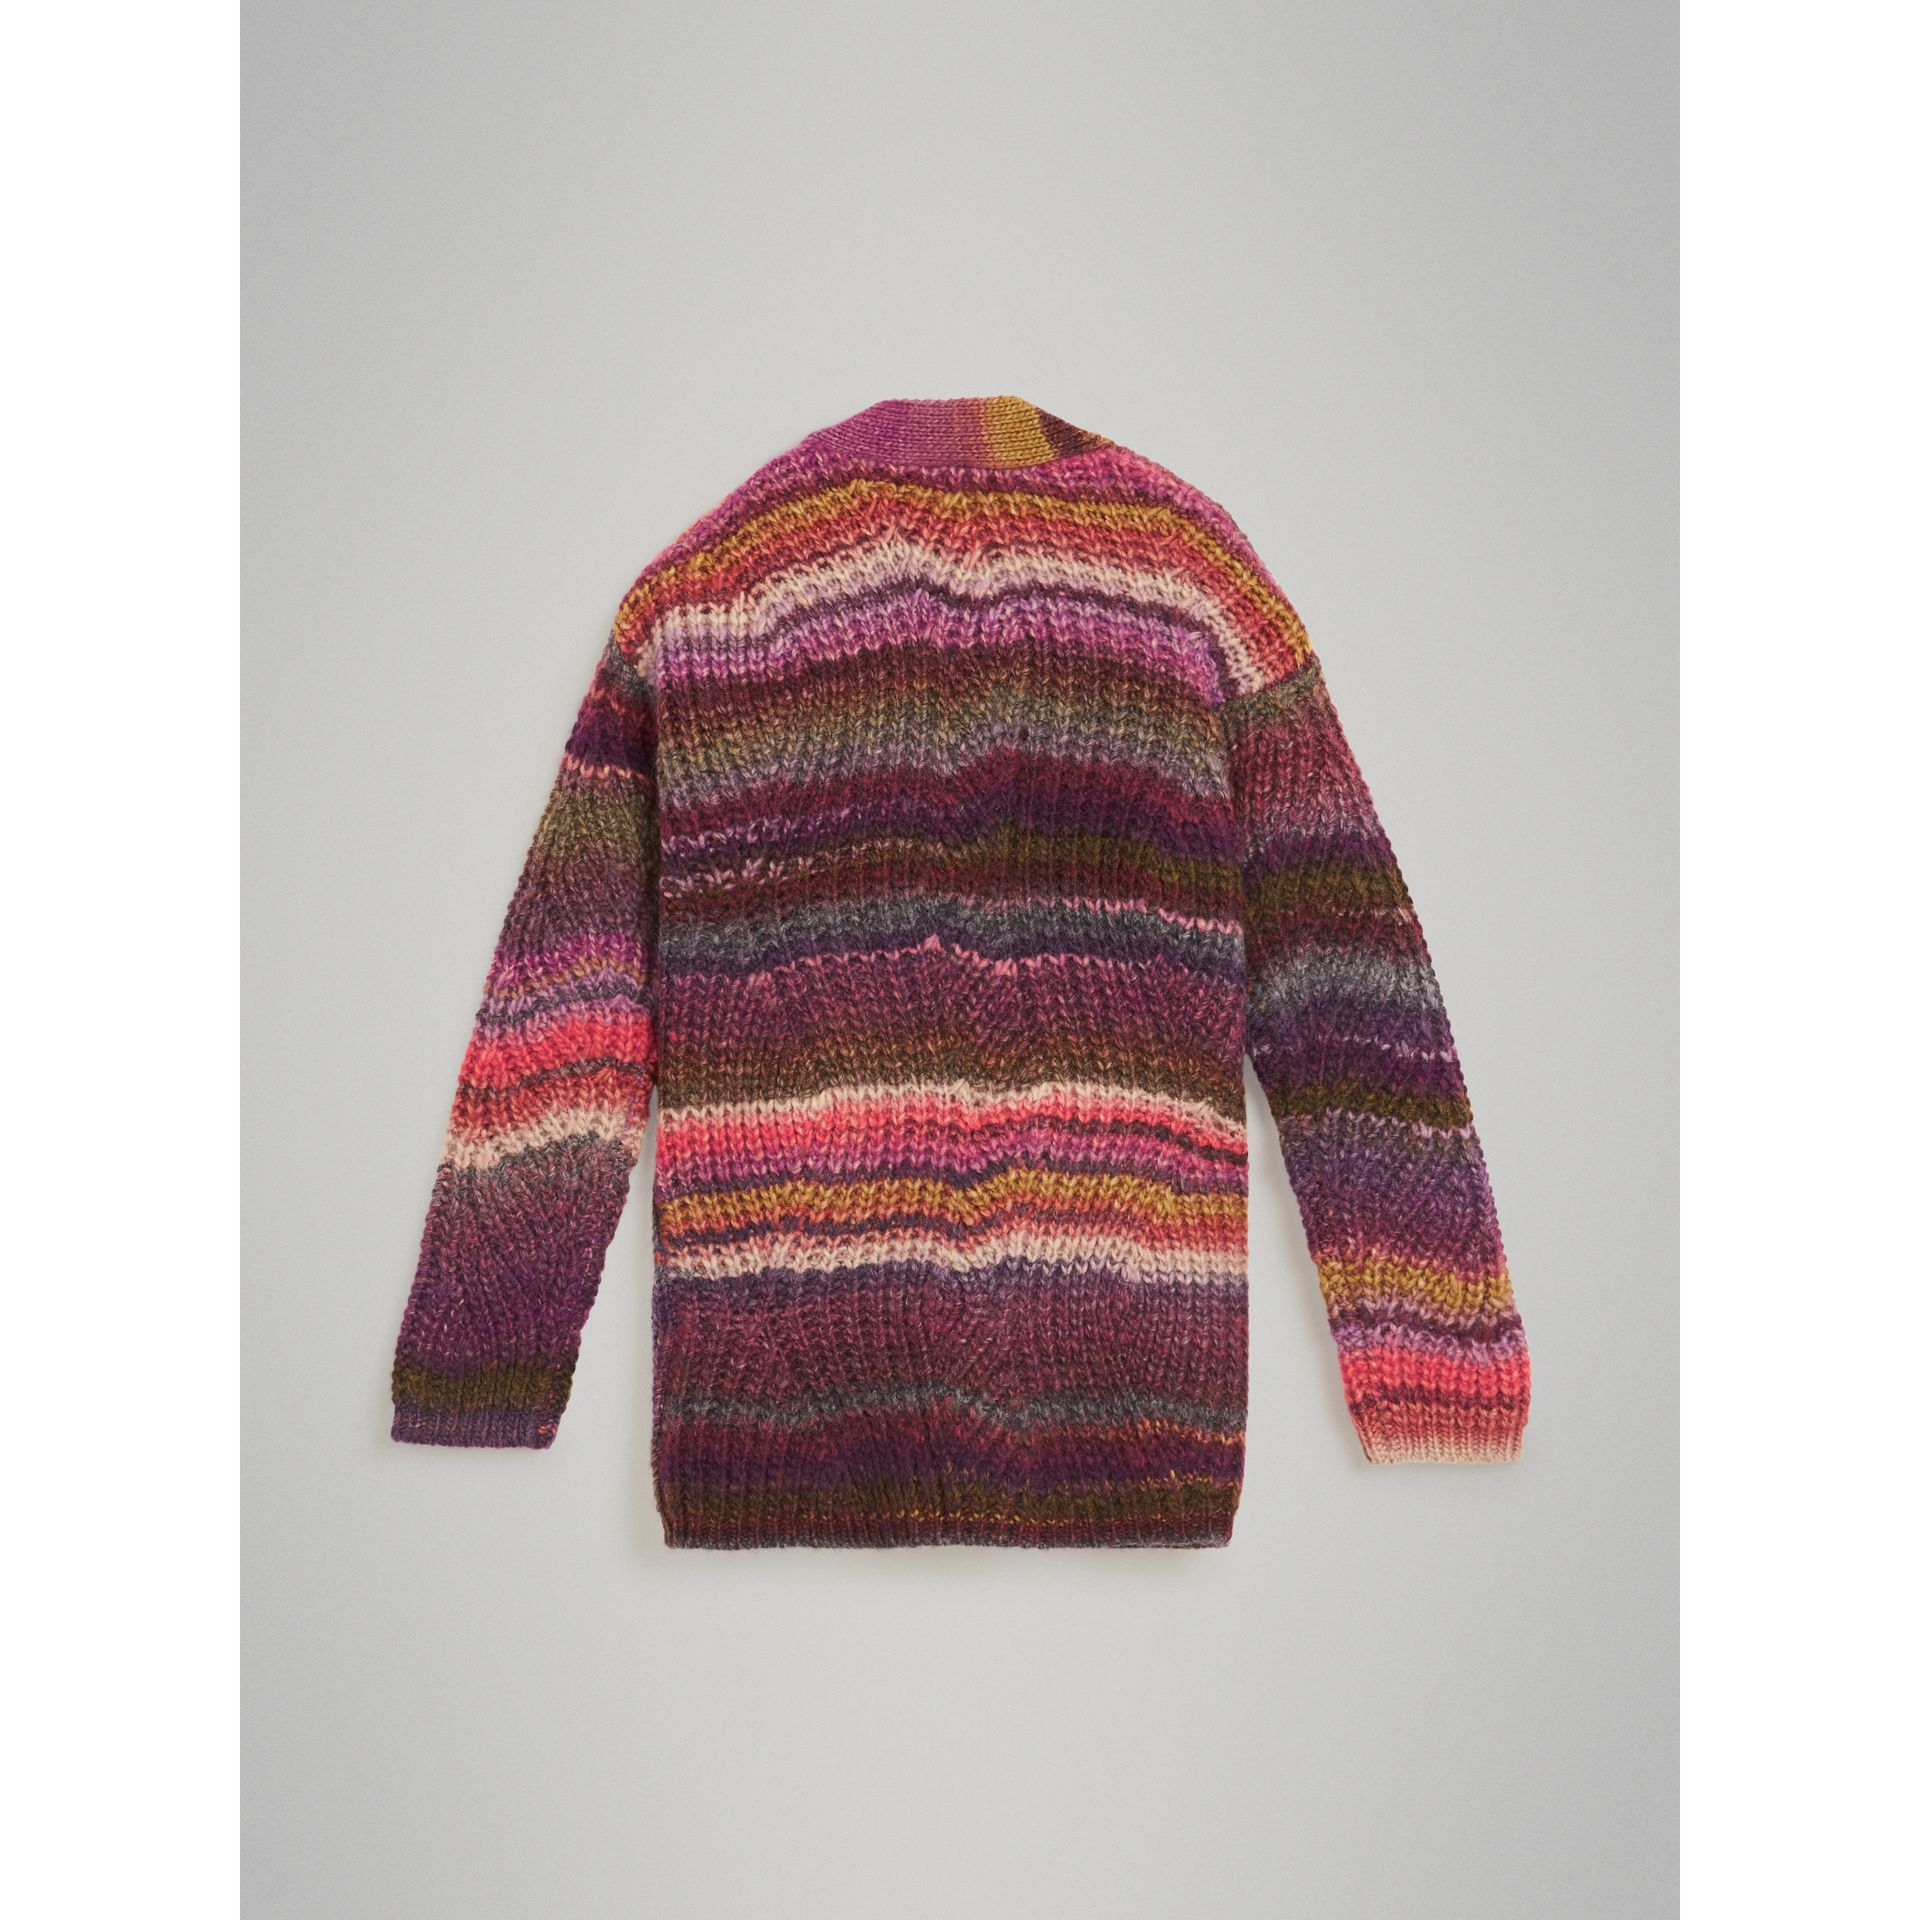 Rib Knit Wool Blend Cardigan in Multicolour | Burberry - gallery image 3